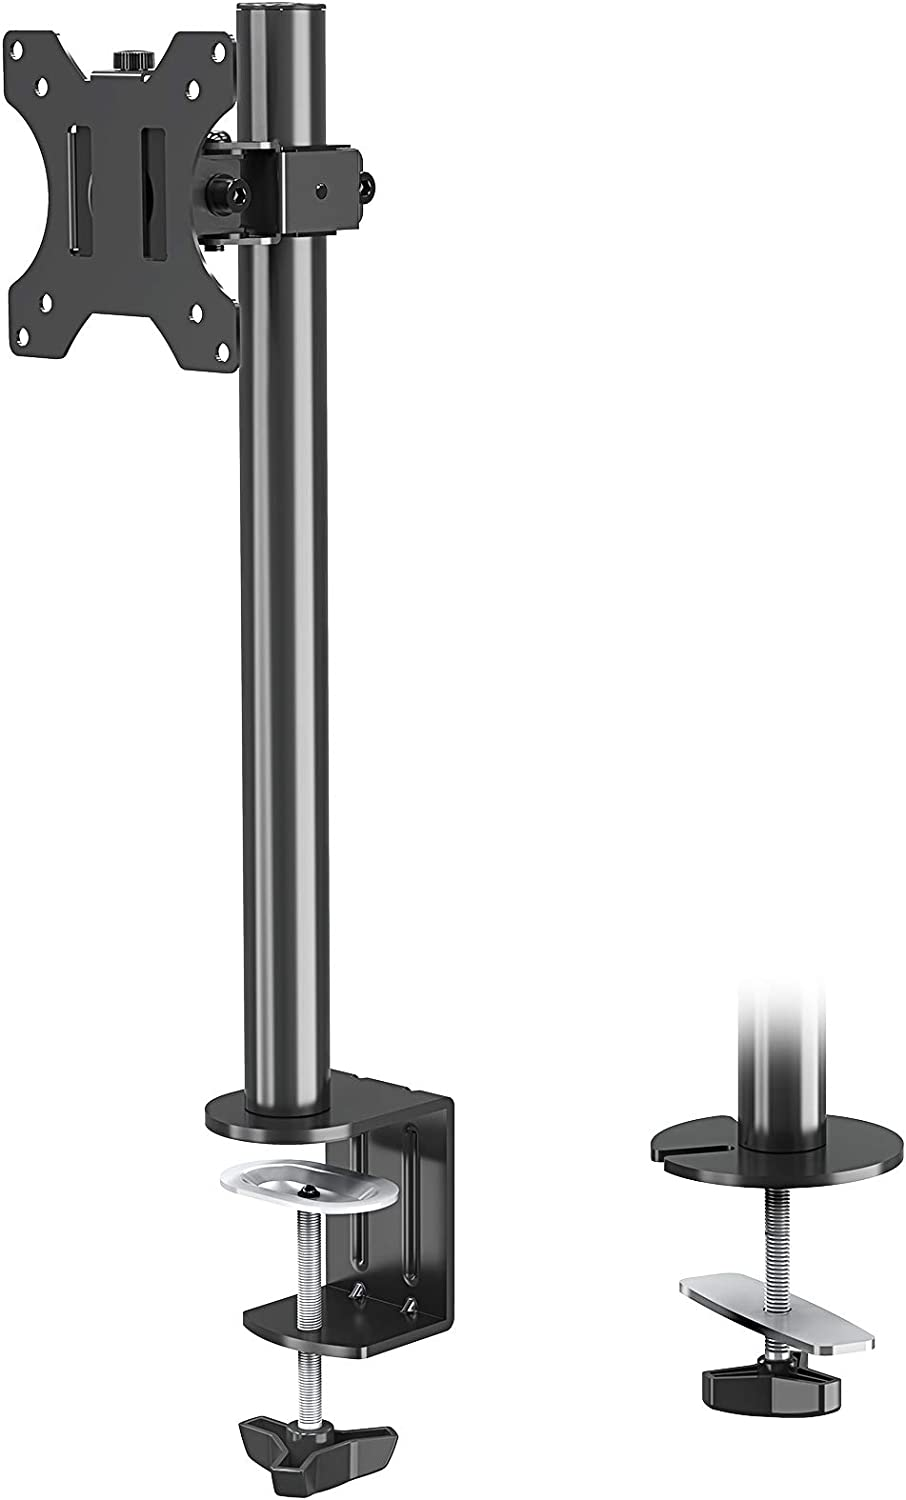 MOUNTUP Single Monitor Mount, Adjustable Monitor Stand for Max 32 Inch Flat Curved Computer Screen, Monitor Arm Desk Mount Fit VESA 75x75& 100x100, up to 17.6lbs, with C-Clamp and Grommet Base, Black